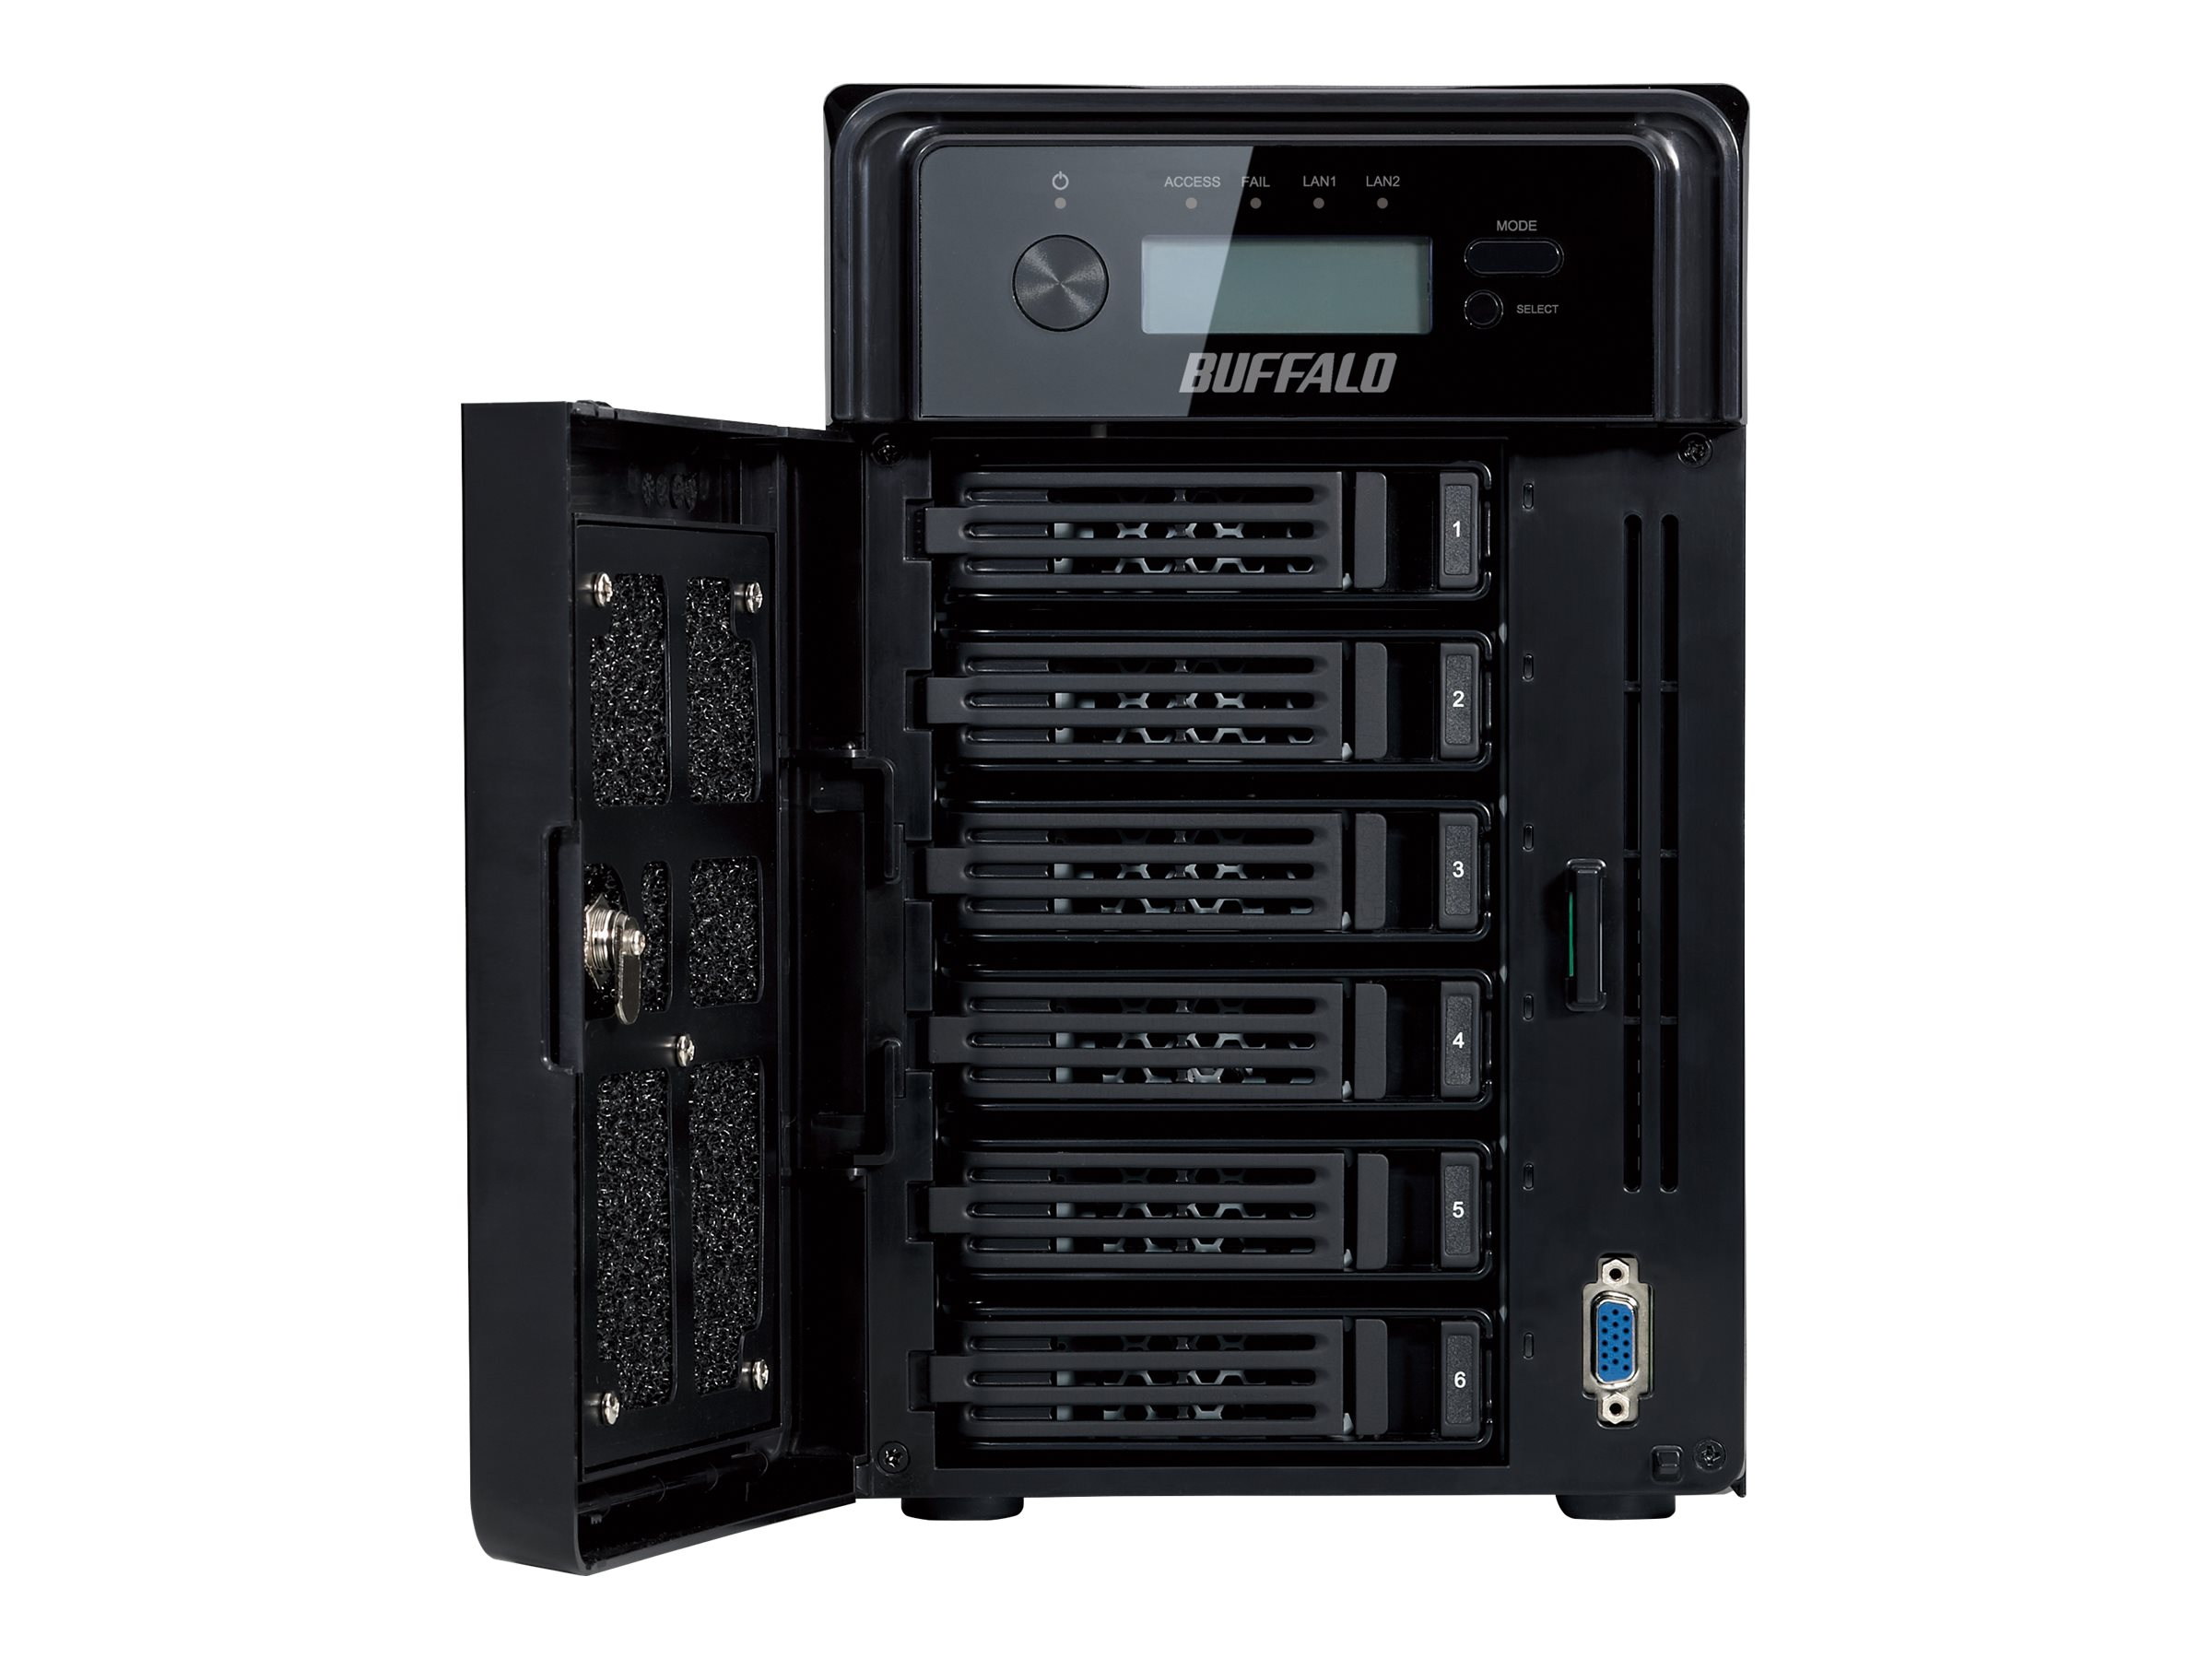 BUFFALO 24TB TeraStation 5610dn WSS Network Attached Storage, WSH5610DN24S2